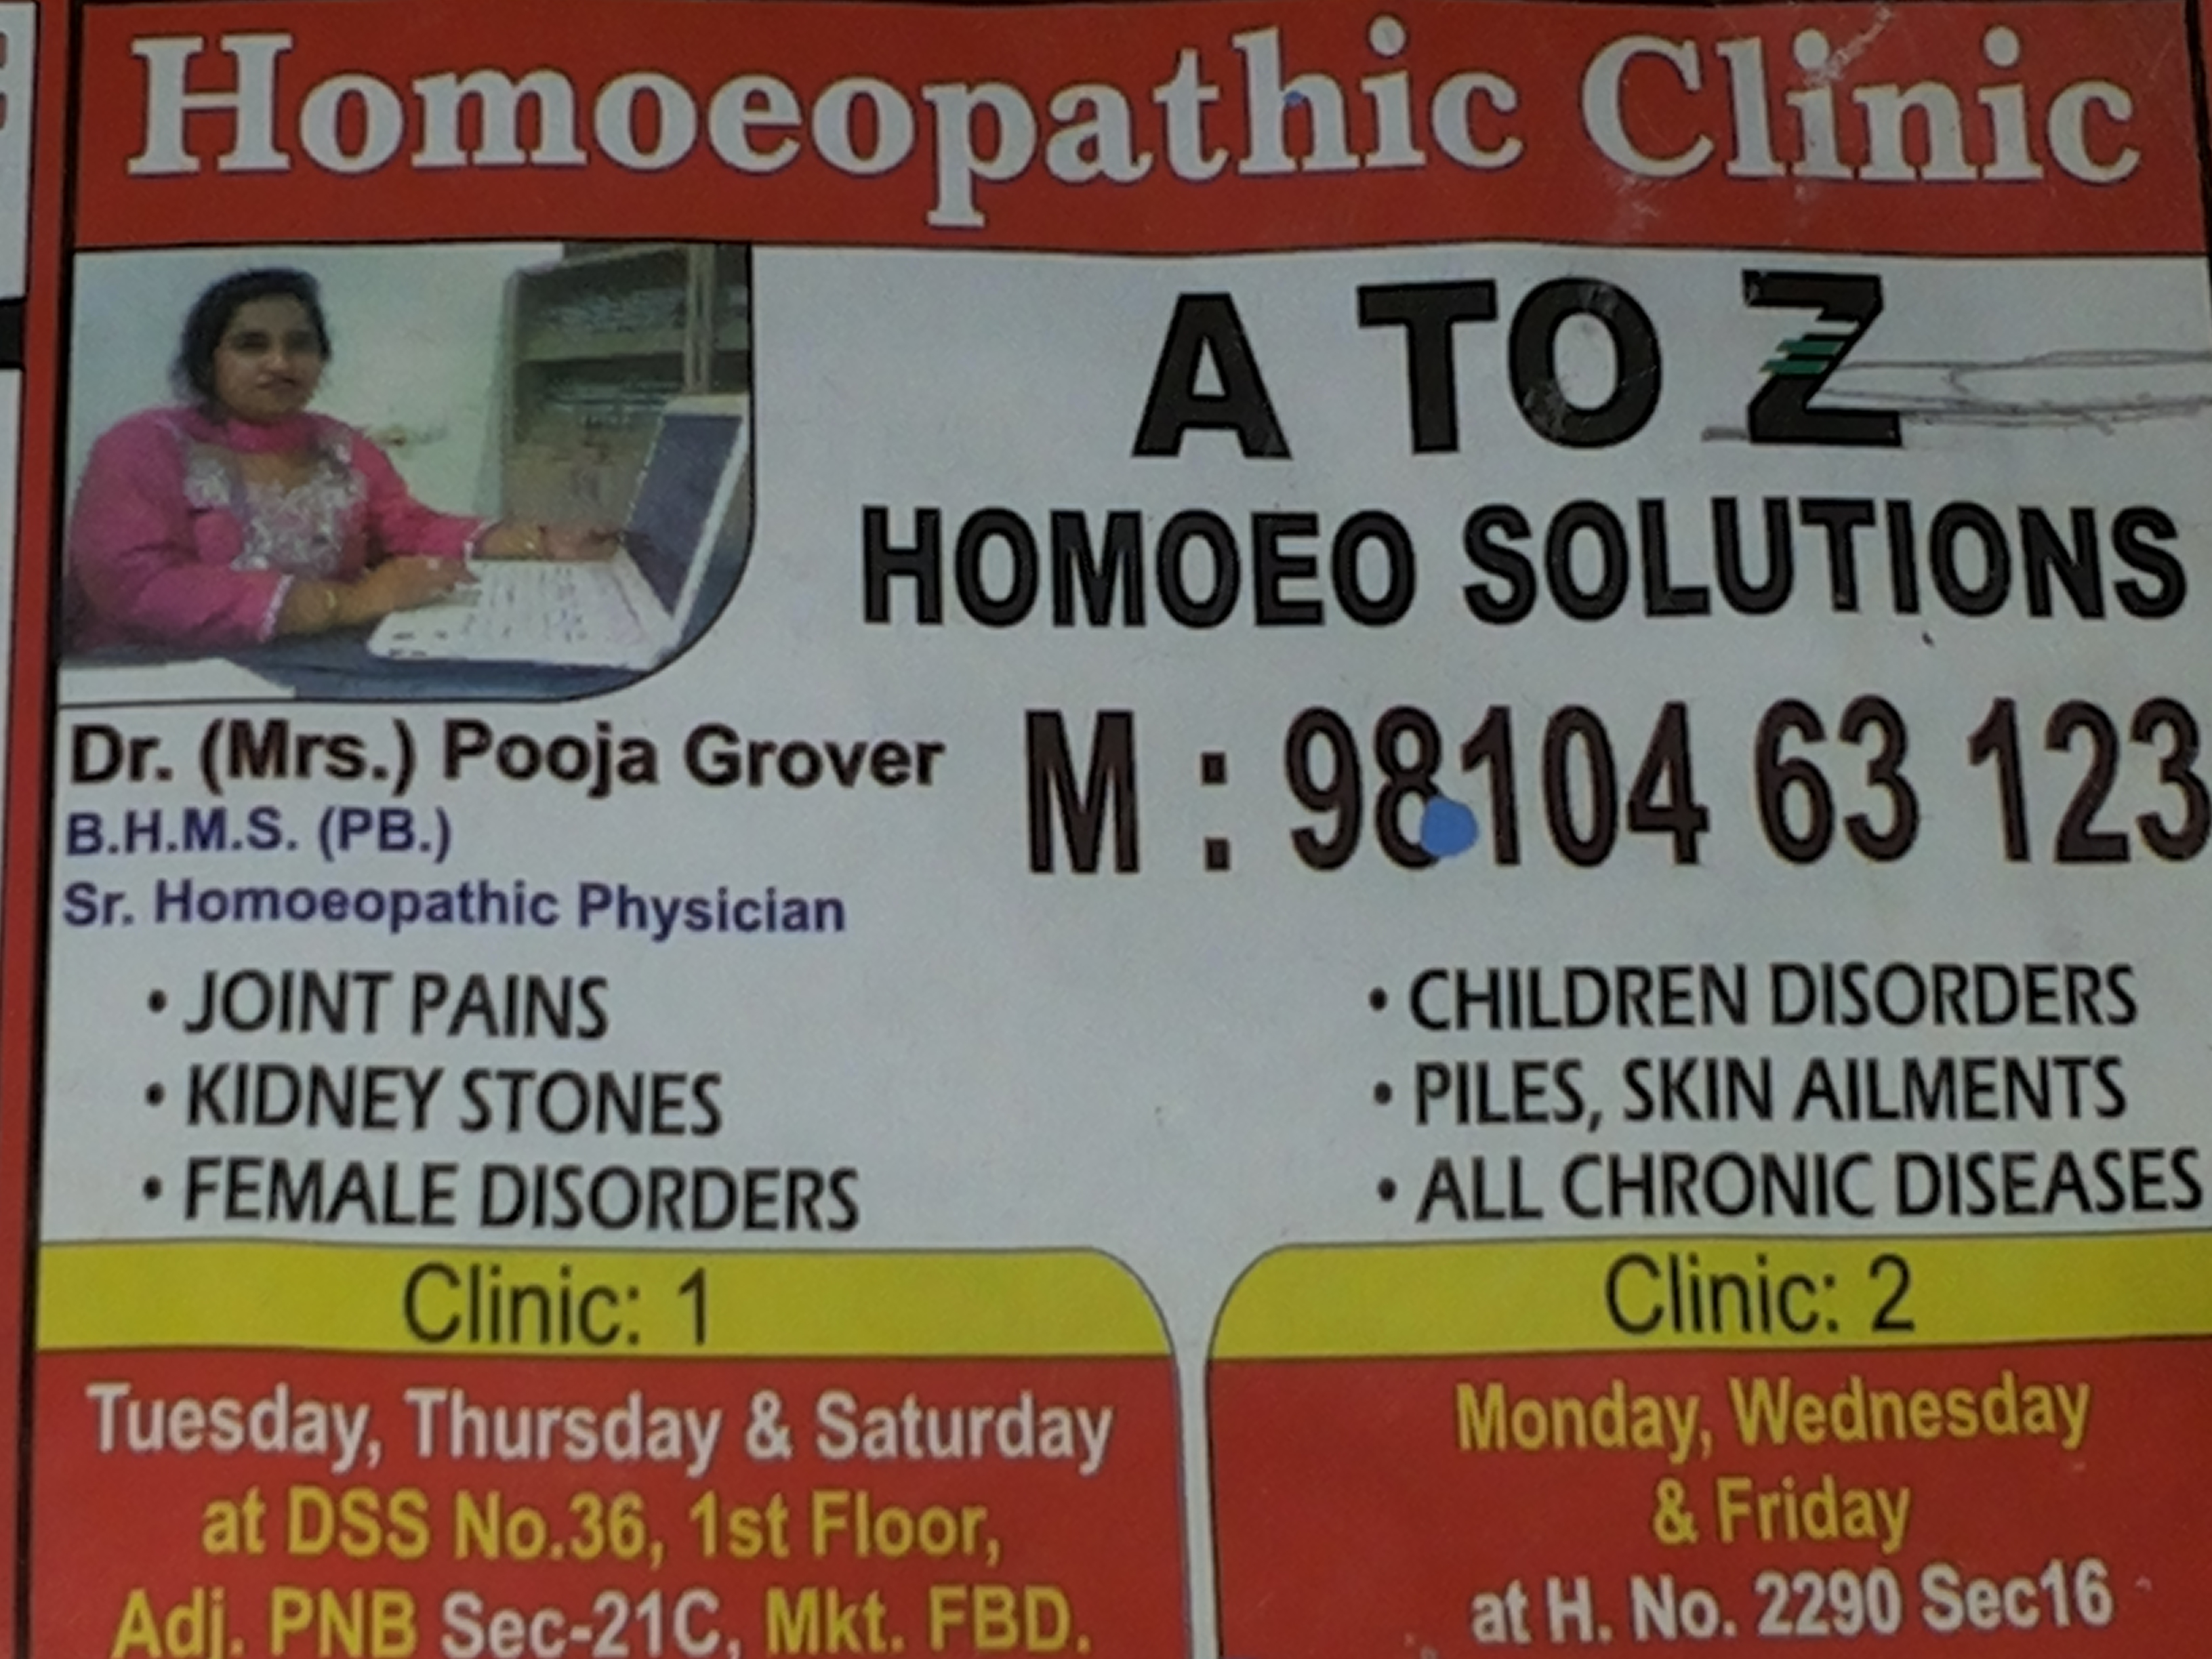 A to Z Homoeo Solutions